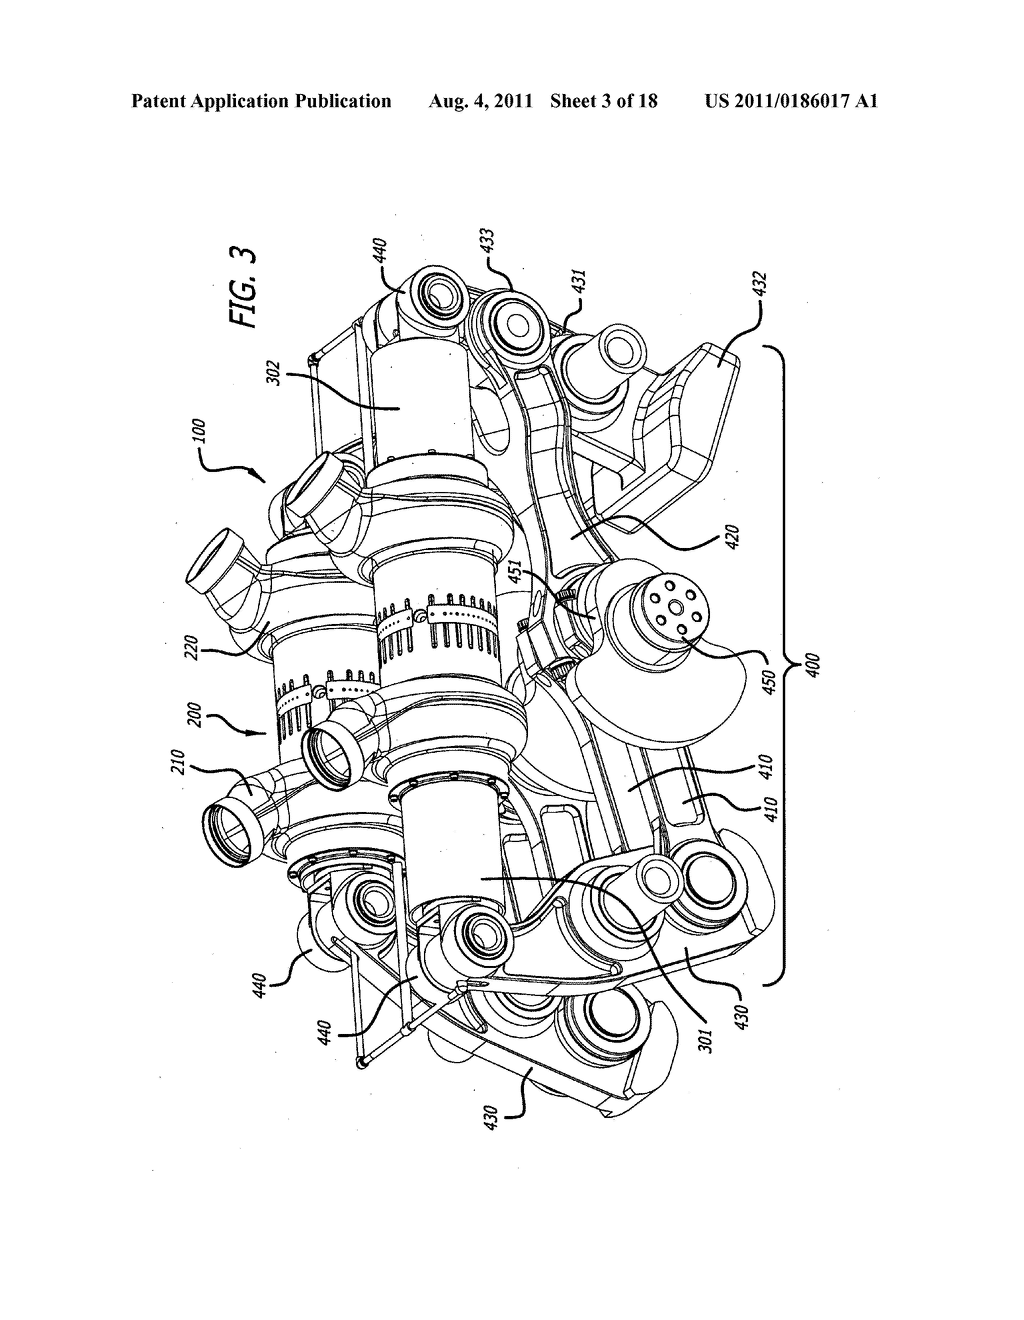 Flat 4 Boxer Engine Piston Diagram Com